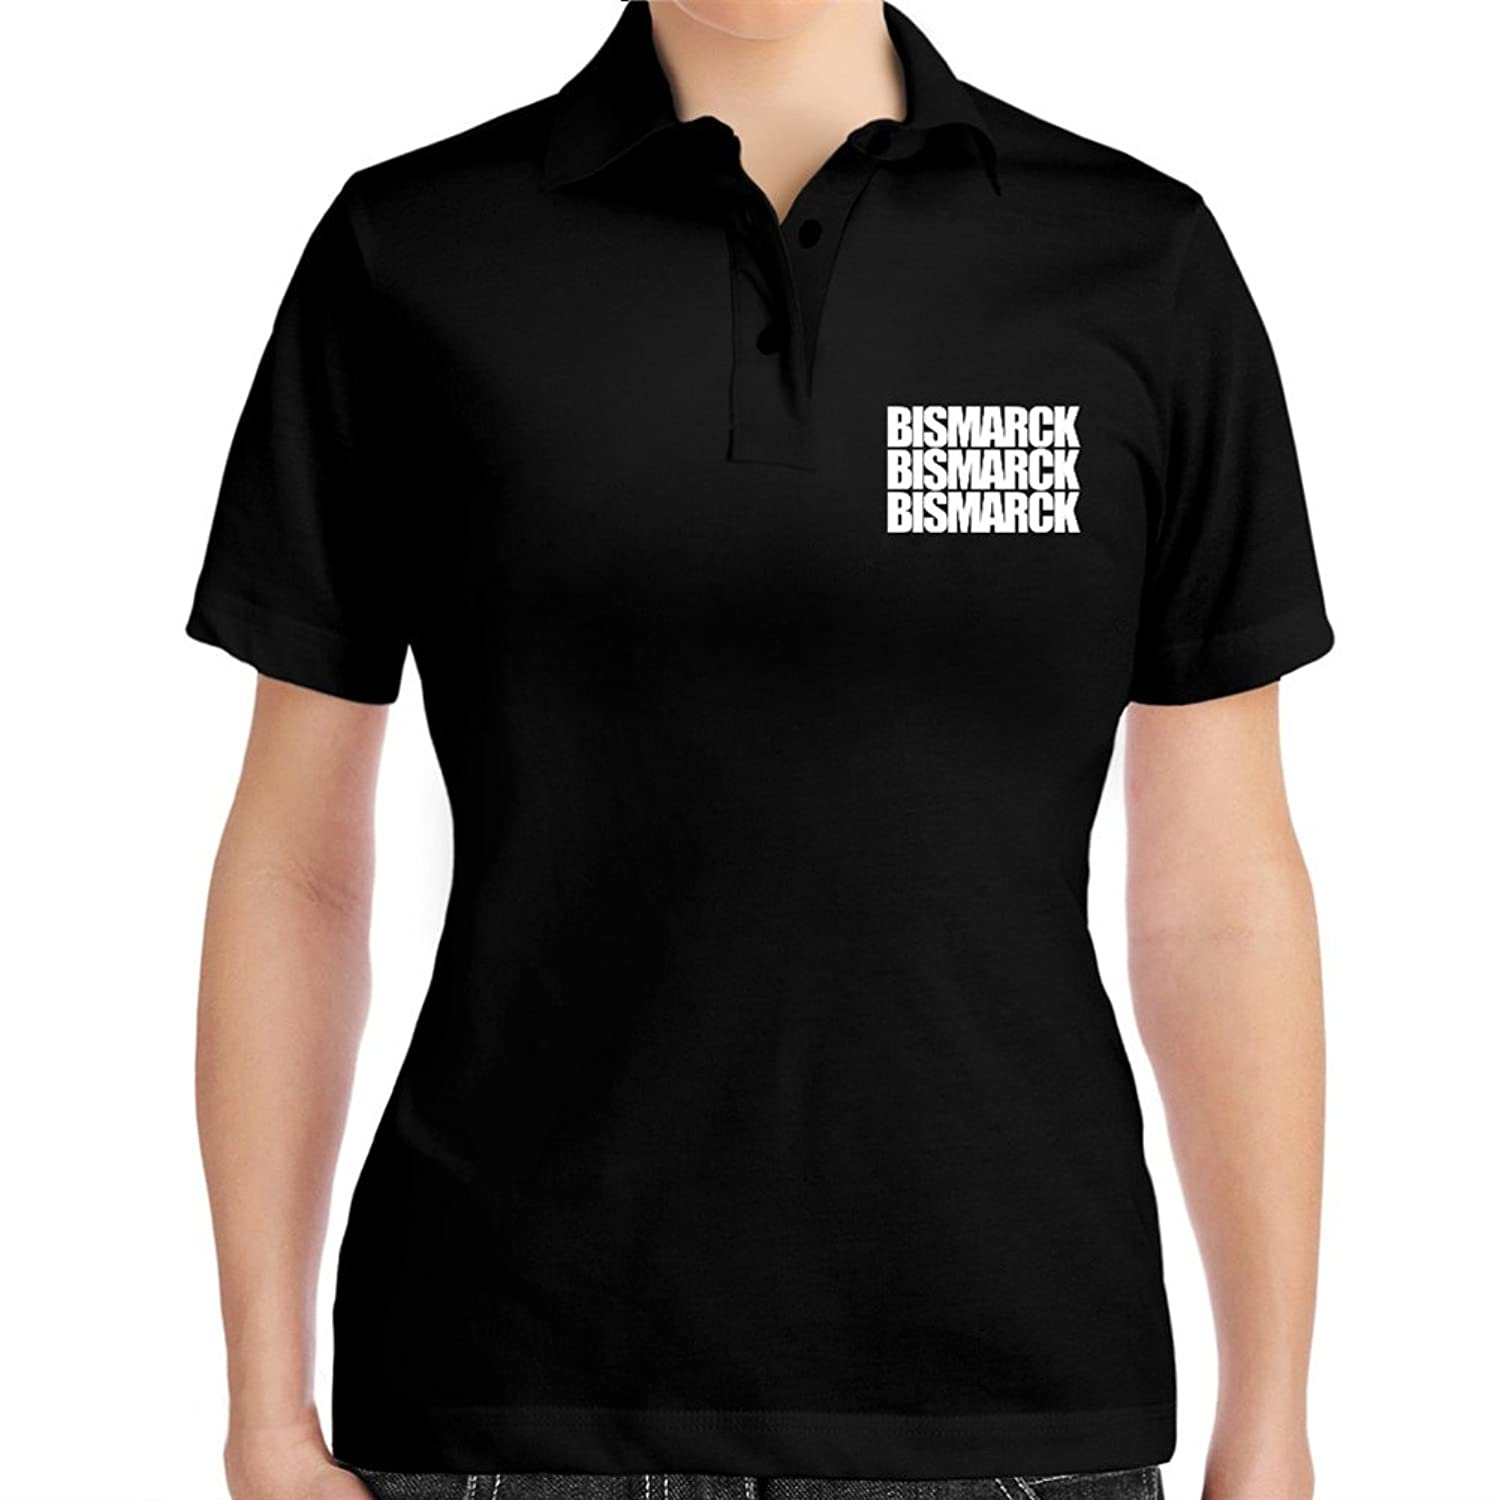 Bismarck three words Women Polo Shirt